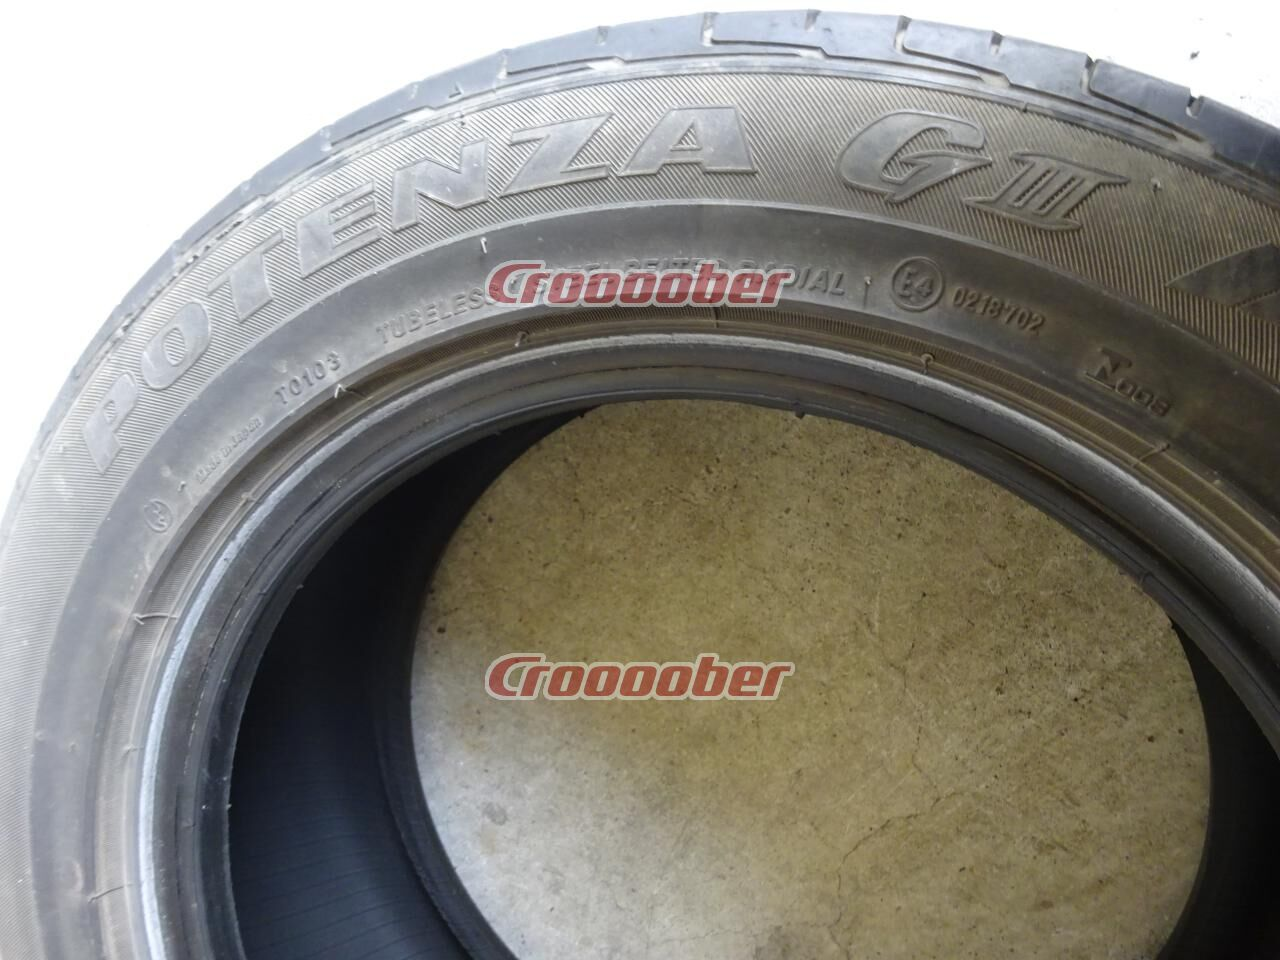 !! Was I Markdown Bridgestone GⅢ | 15 Tire"